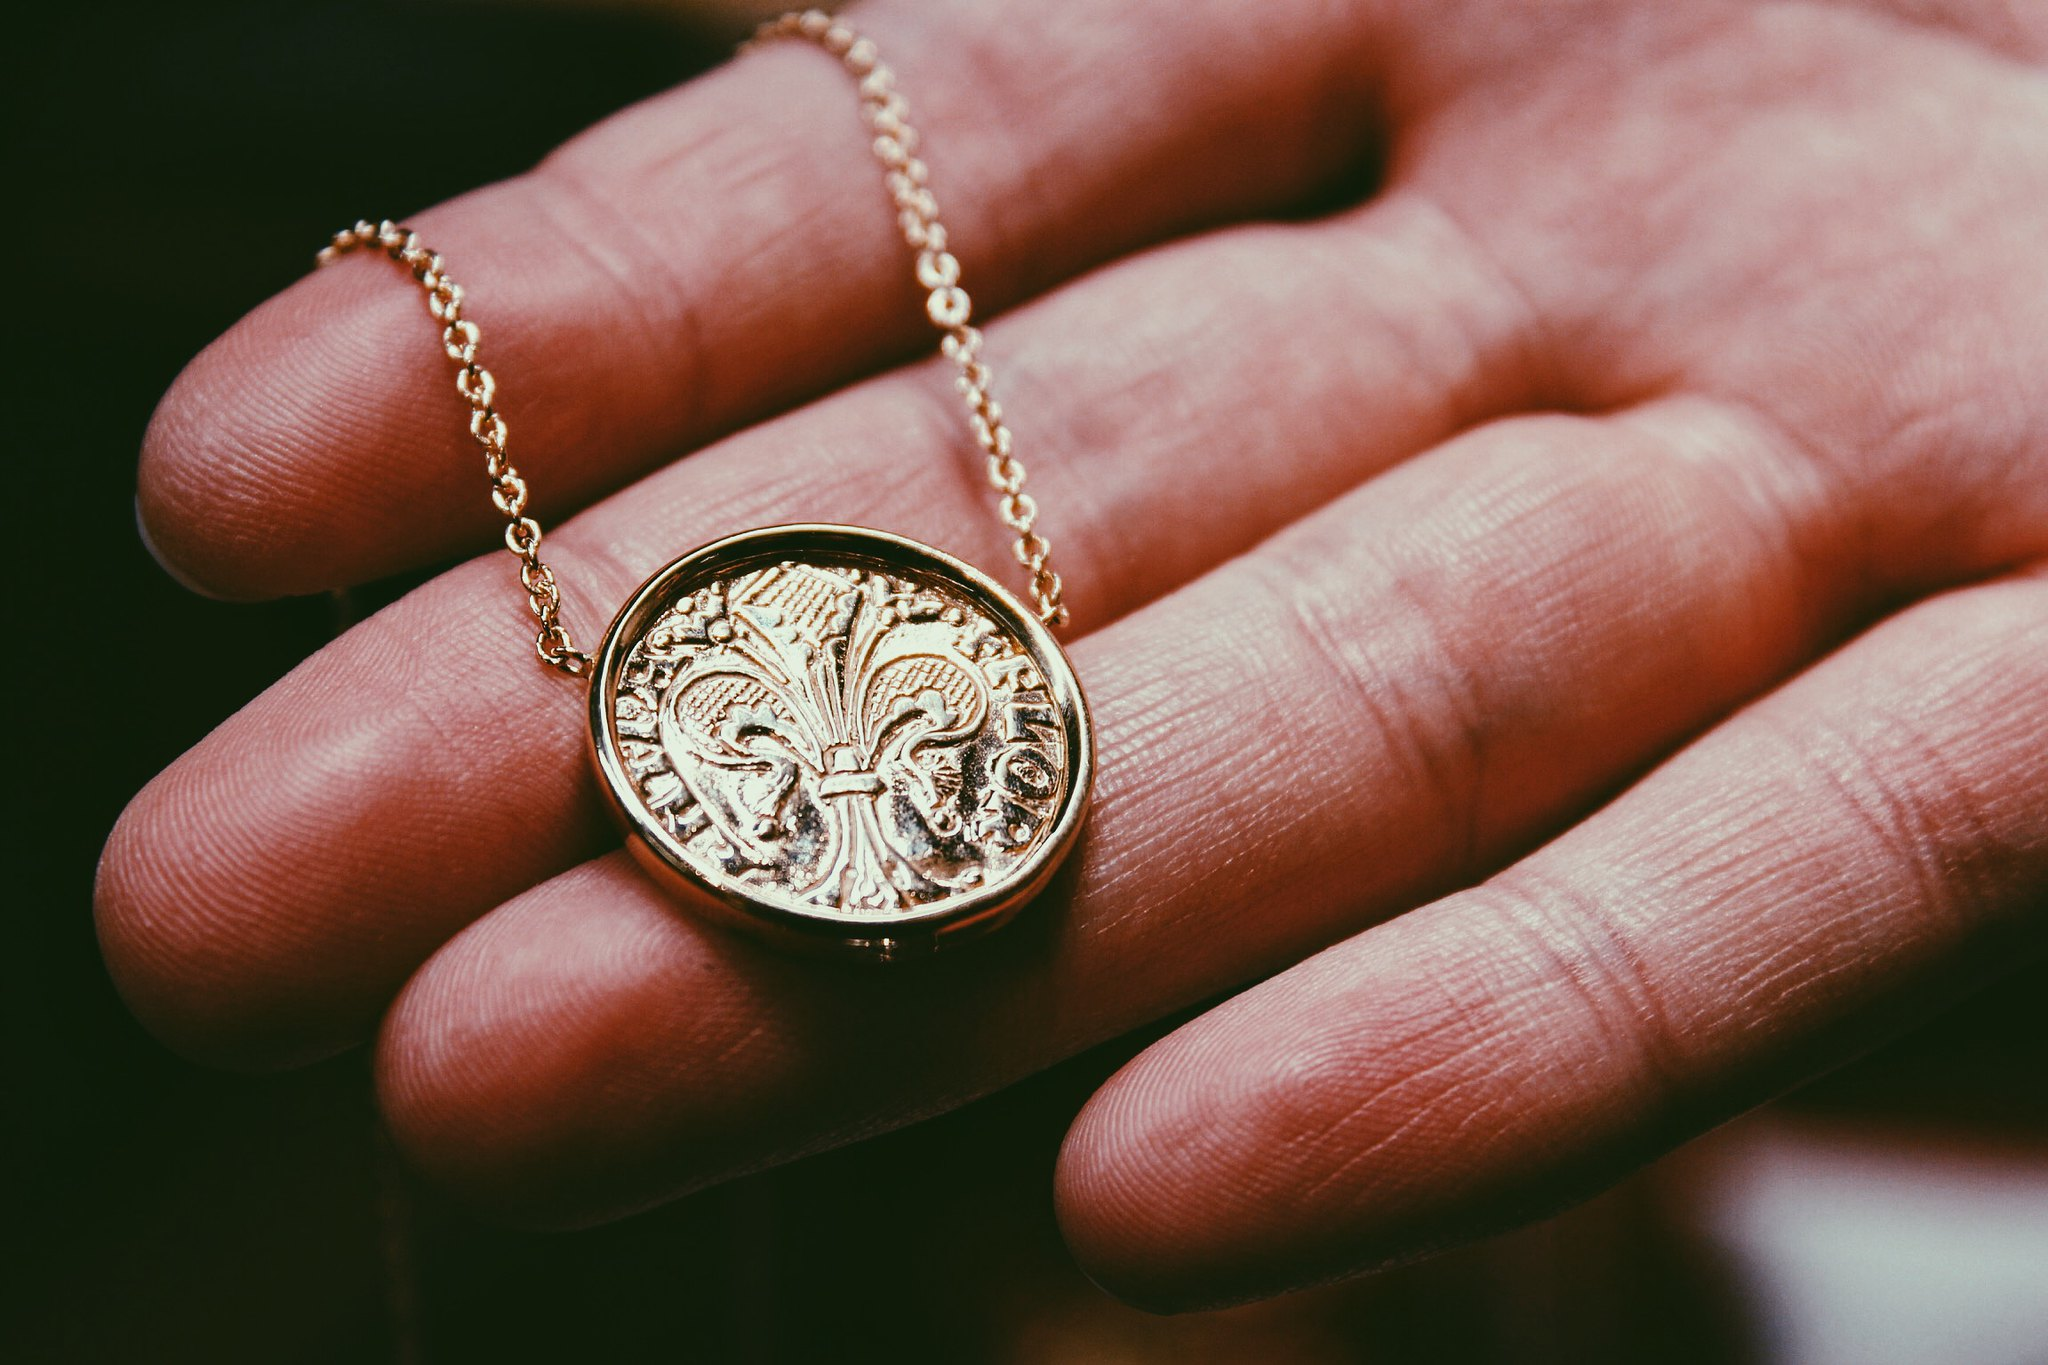 LdM_Jewelery_Field-Trip_Coin-Necklace_20160315112